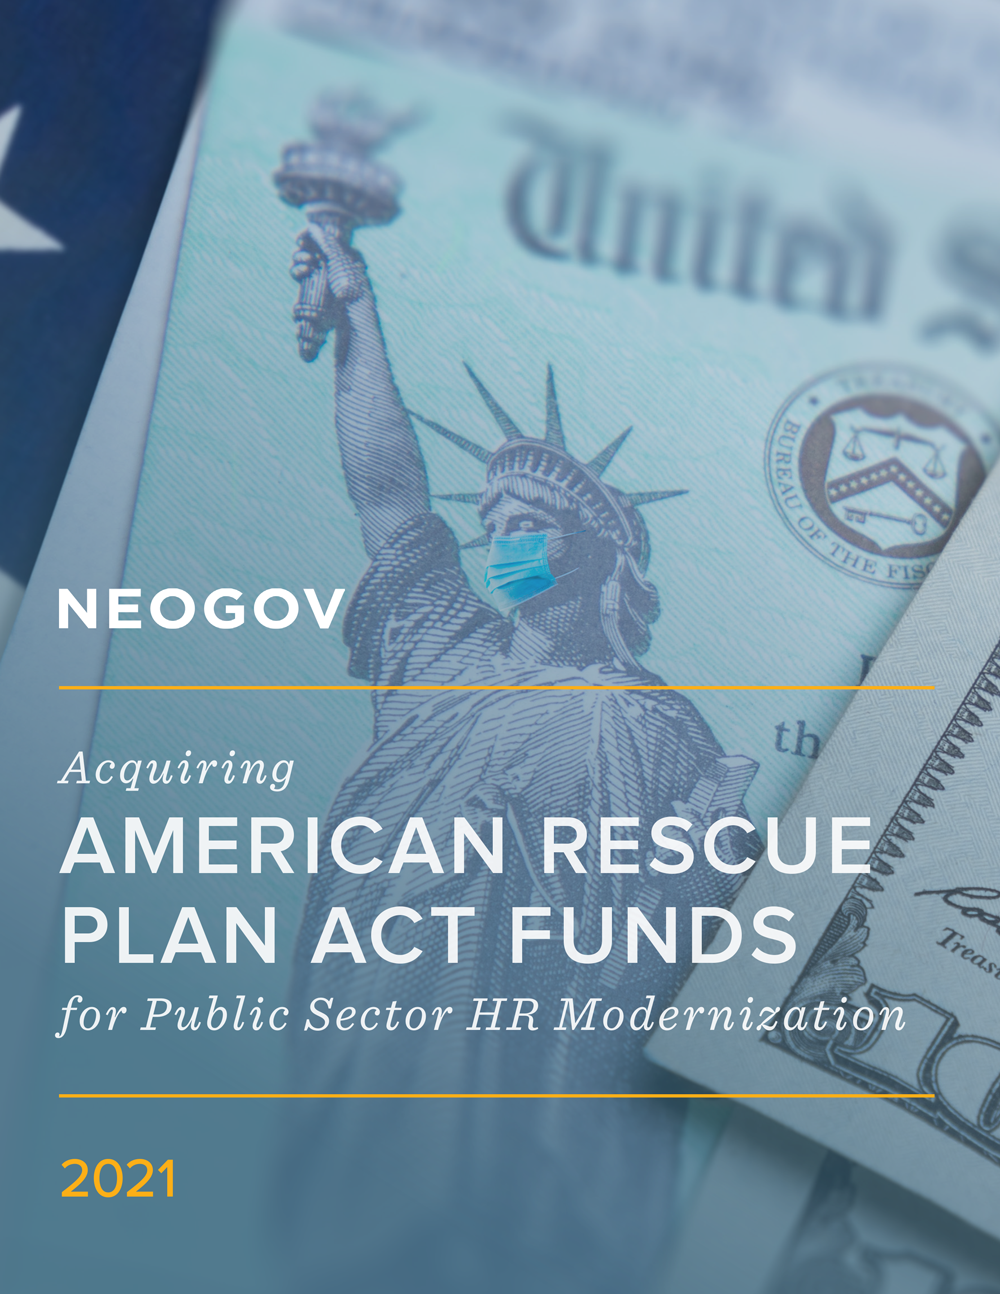 Acquiring American Rescue Plan Funds for Public Sector HR Modernization